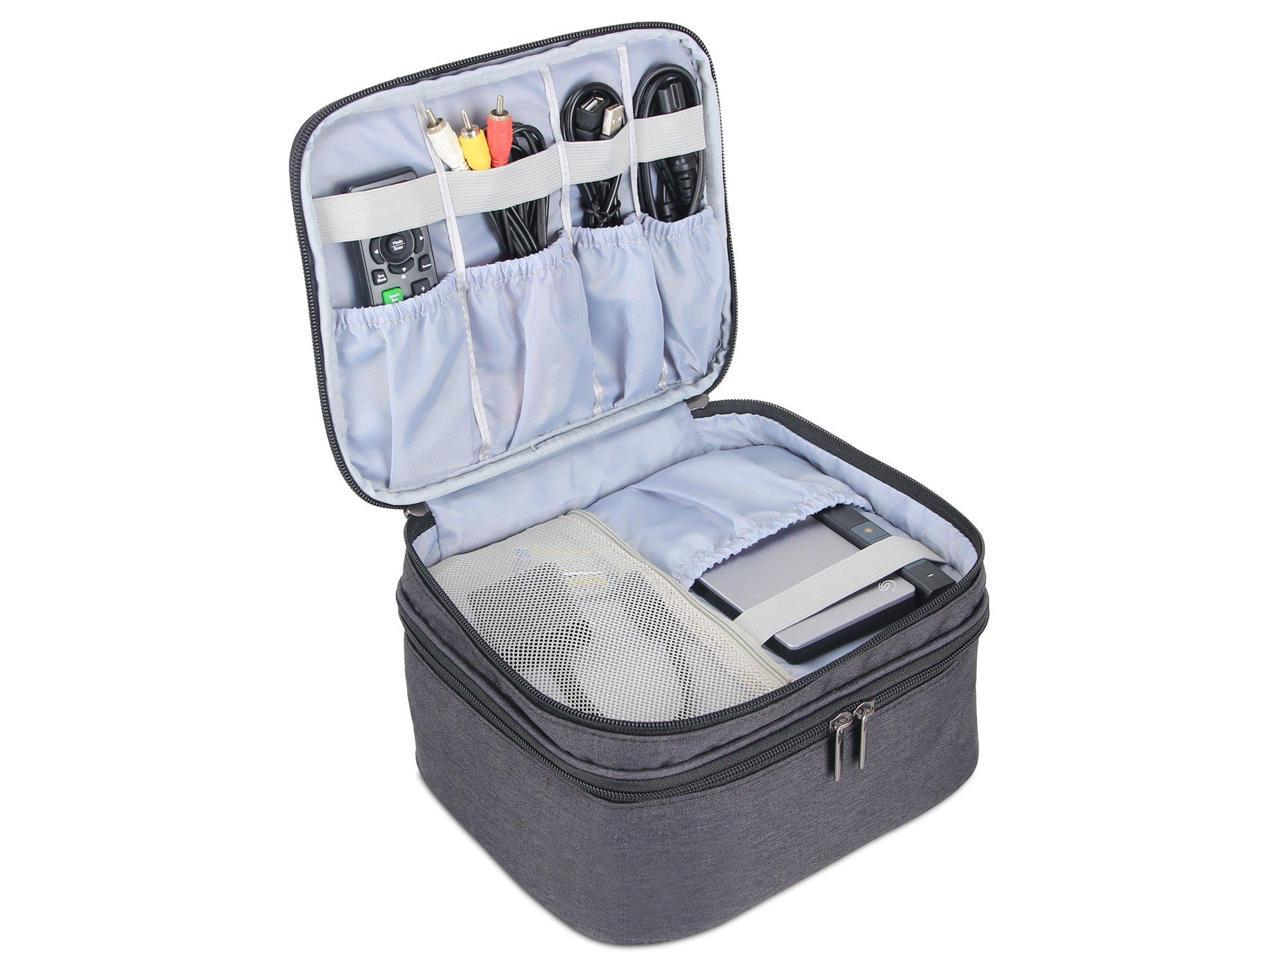 Portable Case for Mini Projector and Accessories Fits Most Major Mini Projectors Black Luxja Carrying Bag for DR.J Mini Projector